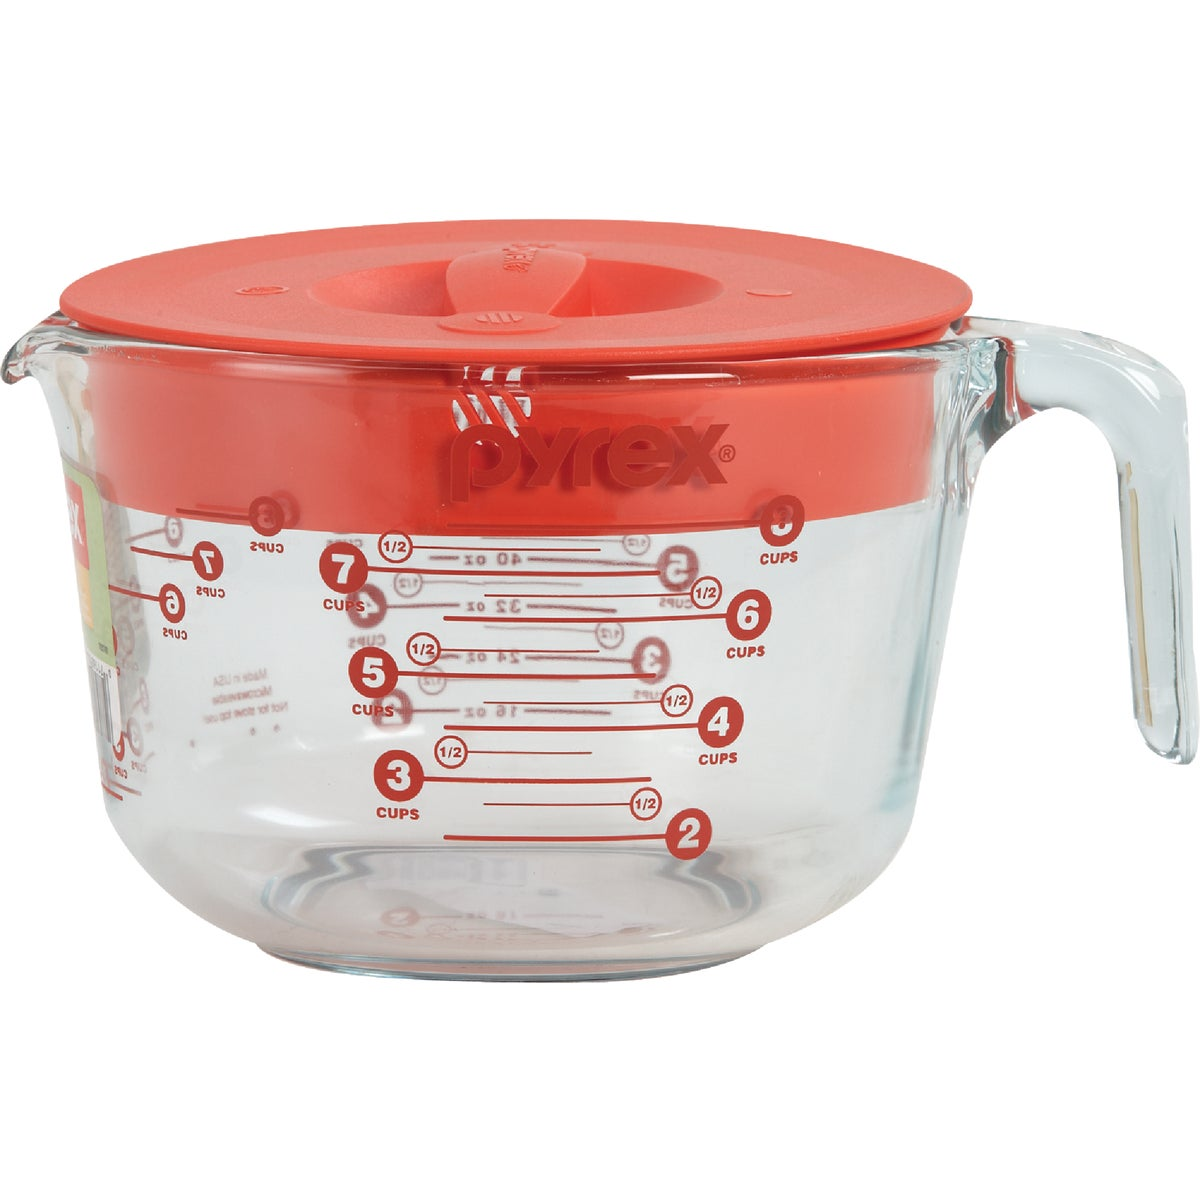 8CUP MEASURING CUP - 1055161 by World Kitchen